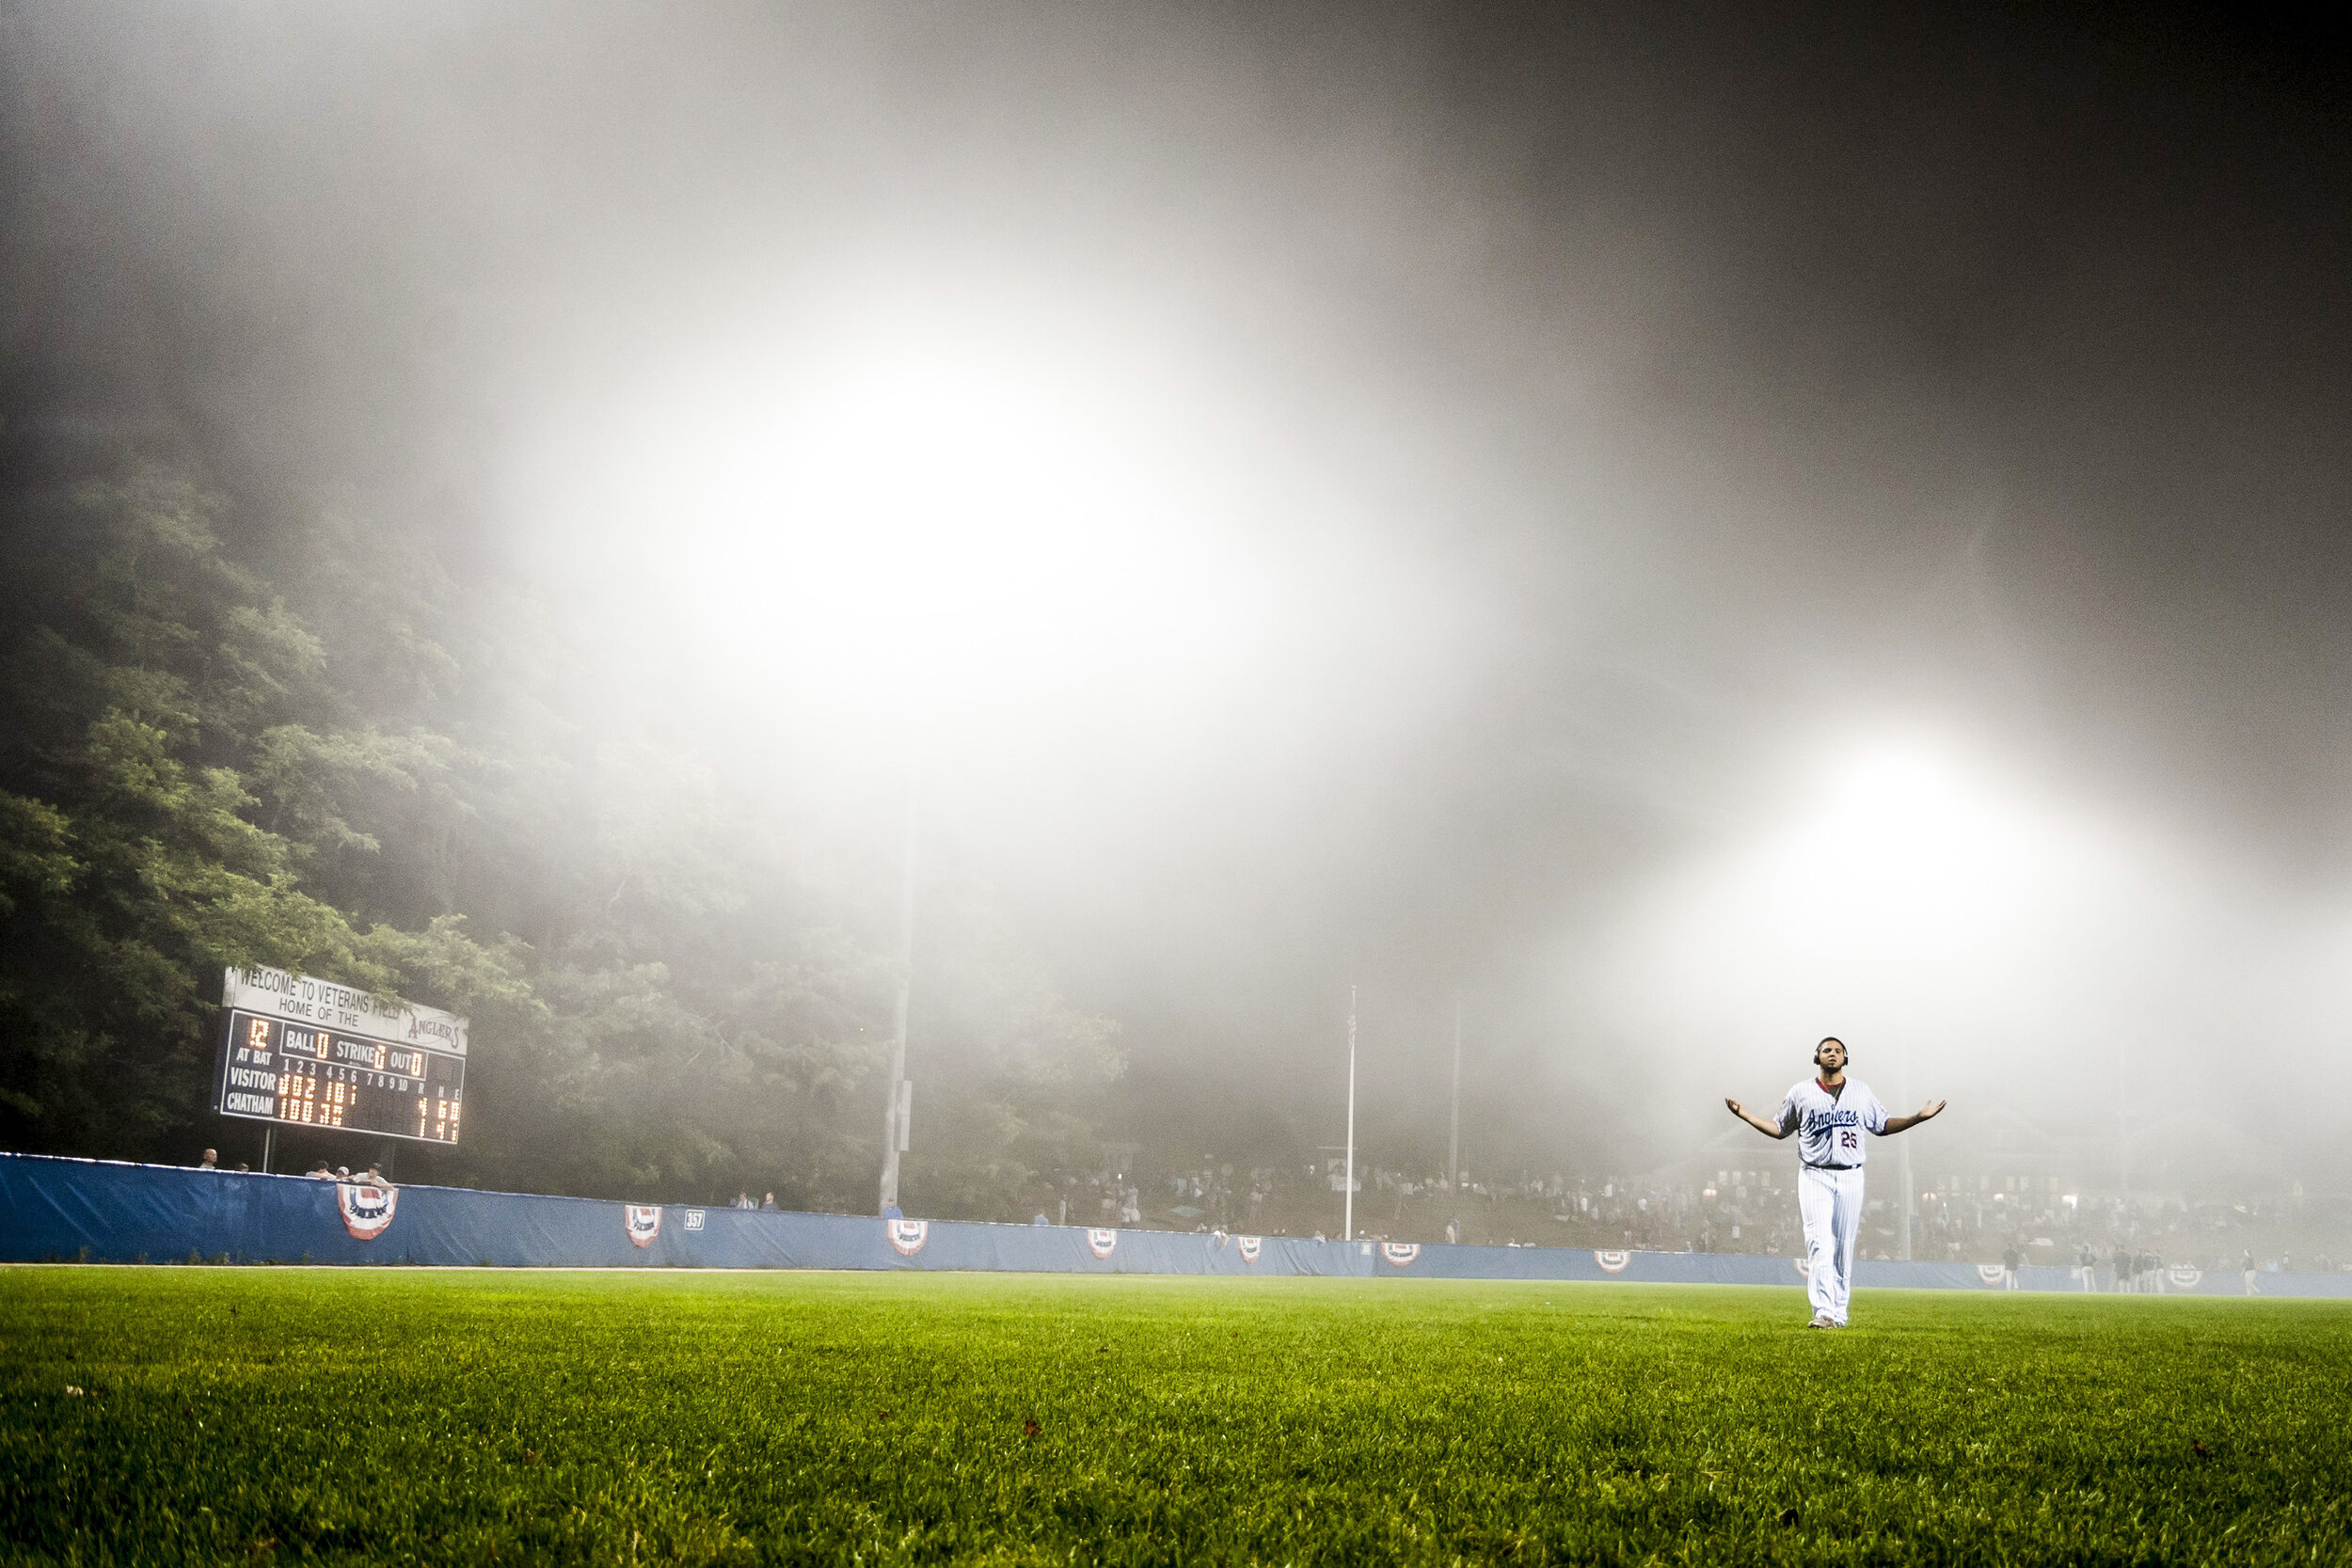 Chatham Anglers pitcher Alex Manoah stretches to stay warm in a fog delay during the Cape Cod Baseball League Final against the Wareham Gatemen at Veterans Field in Chatham, MA.